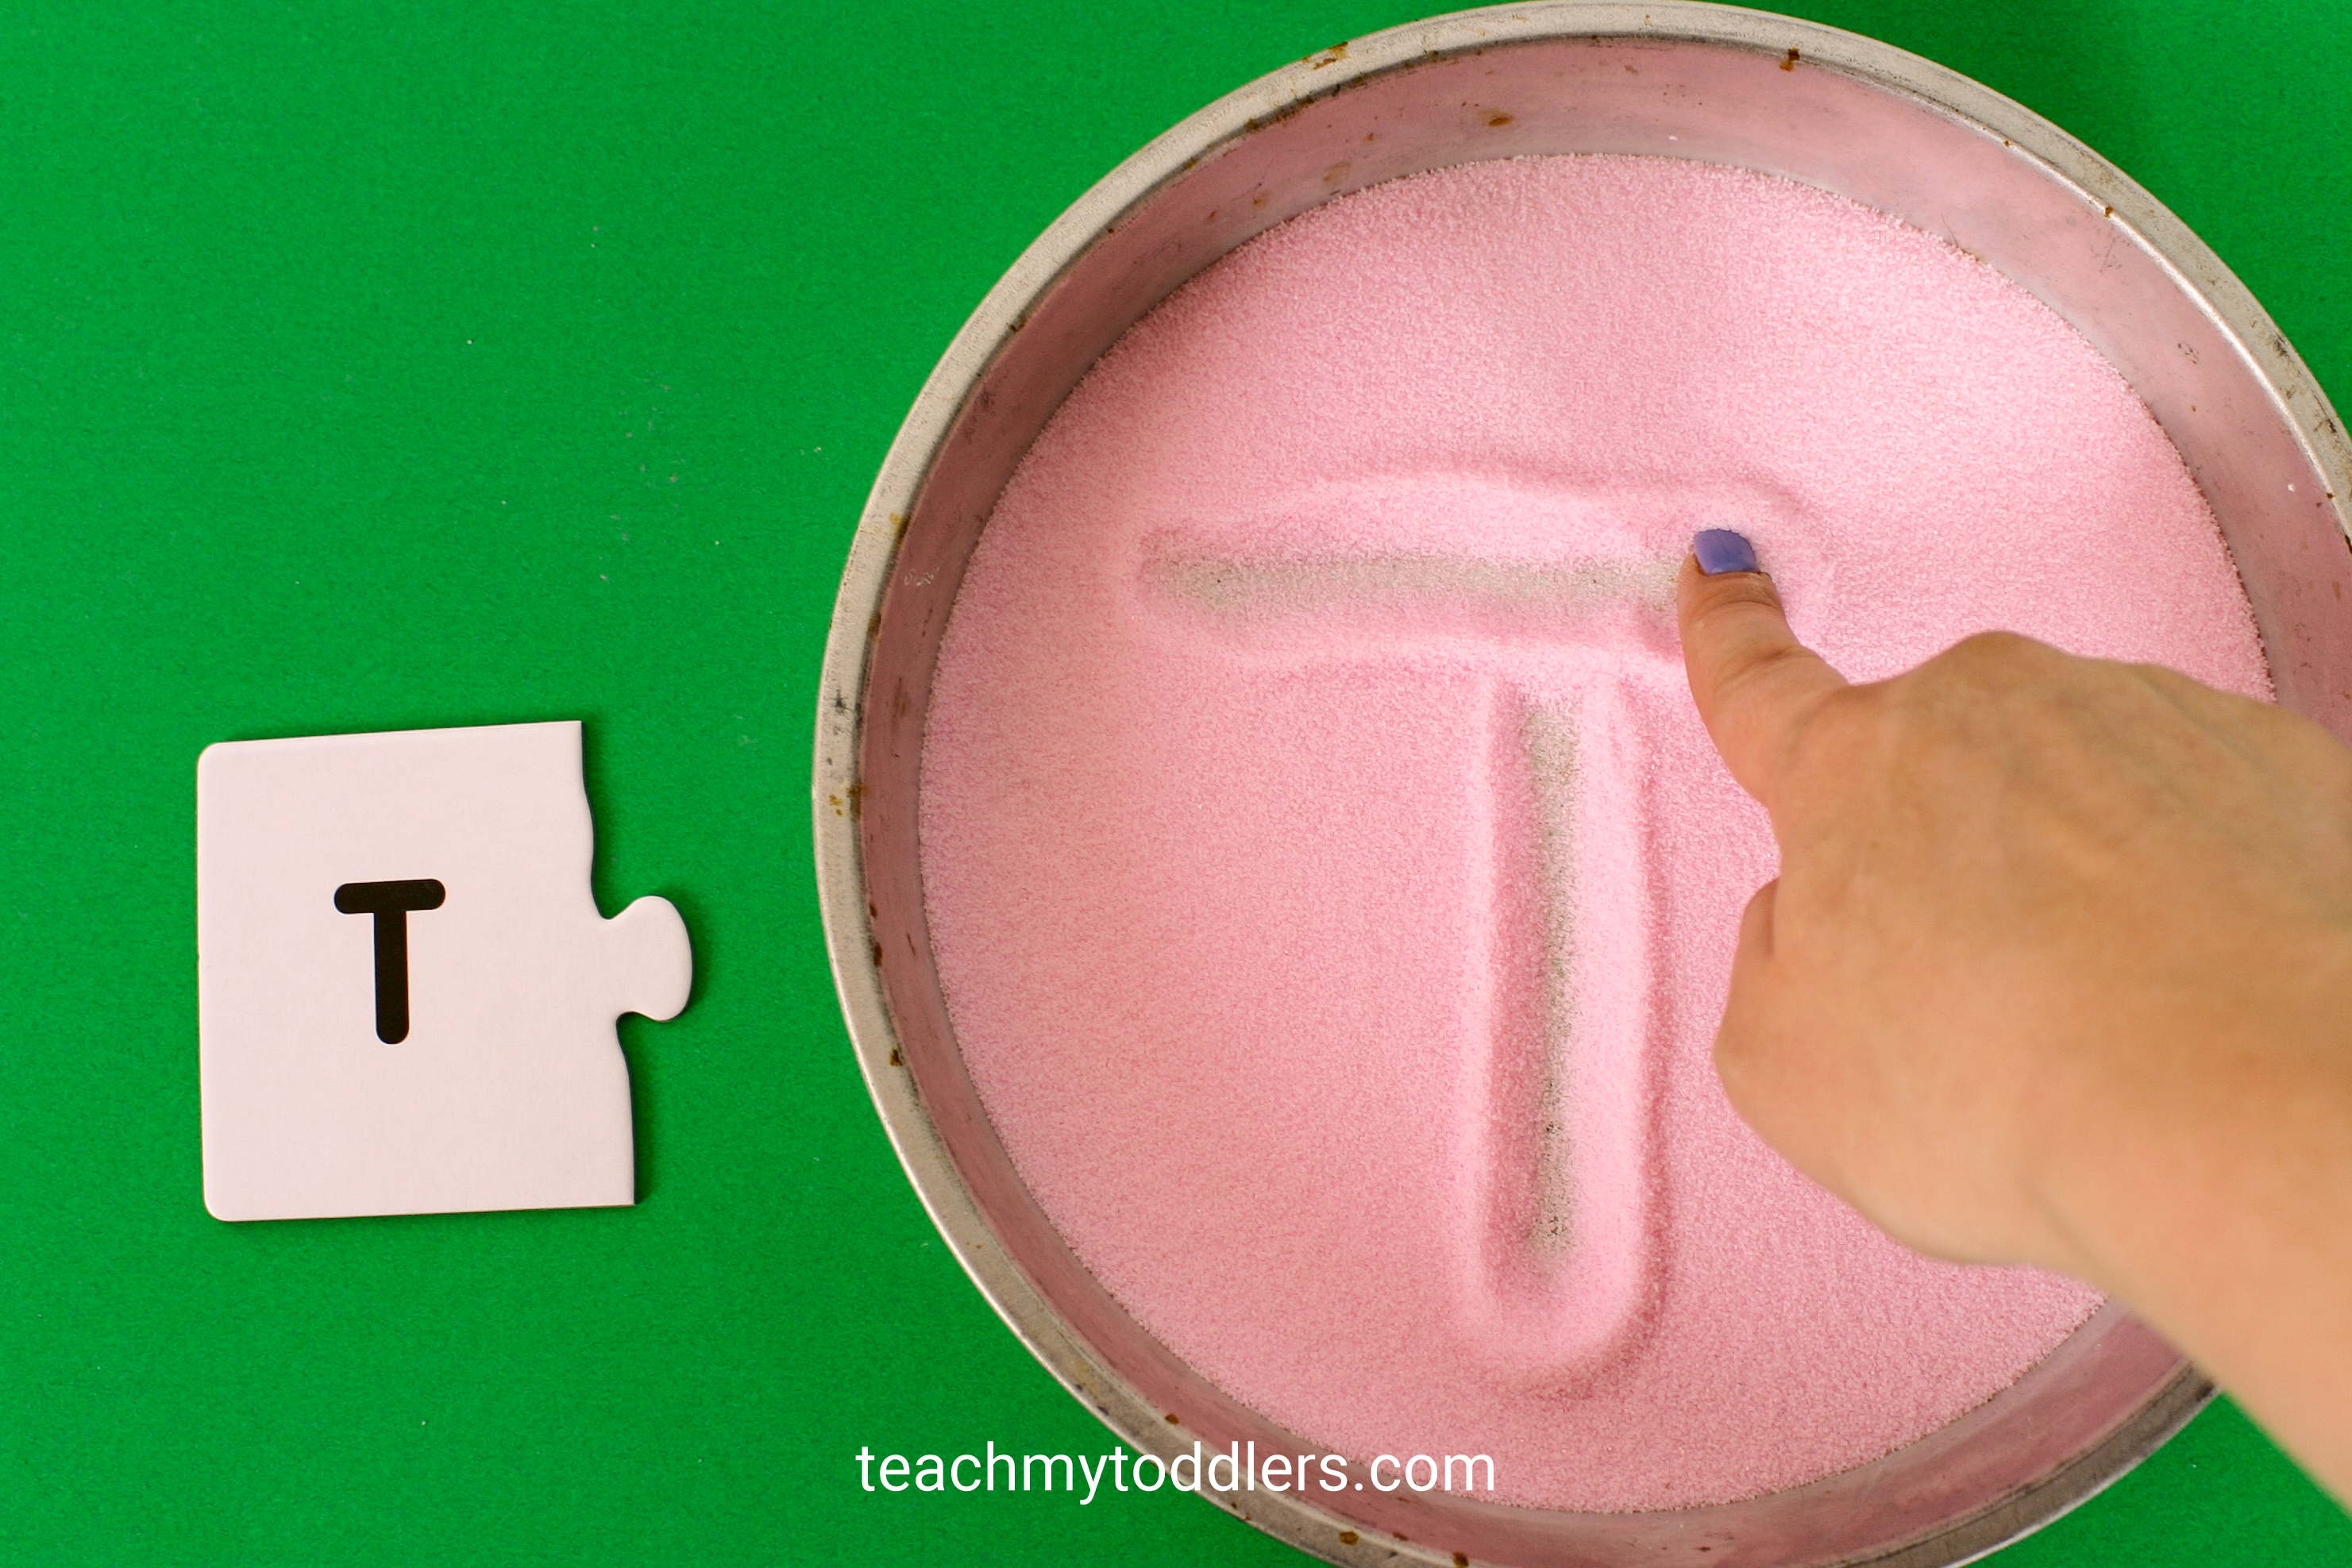 Discover how to make awesome diy colored salt for your teach my toddler projects